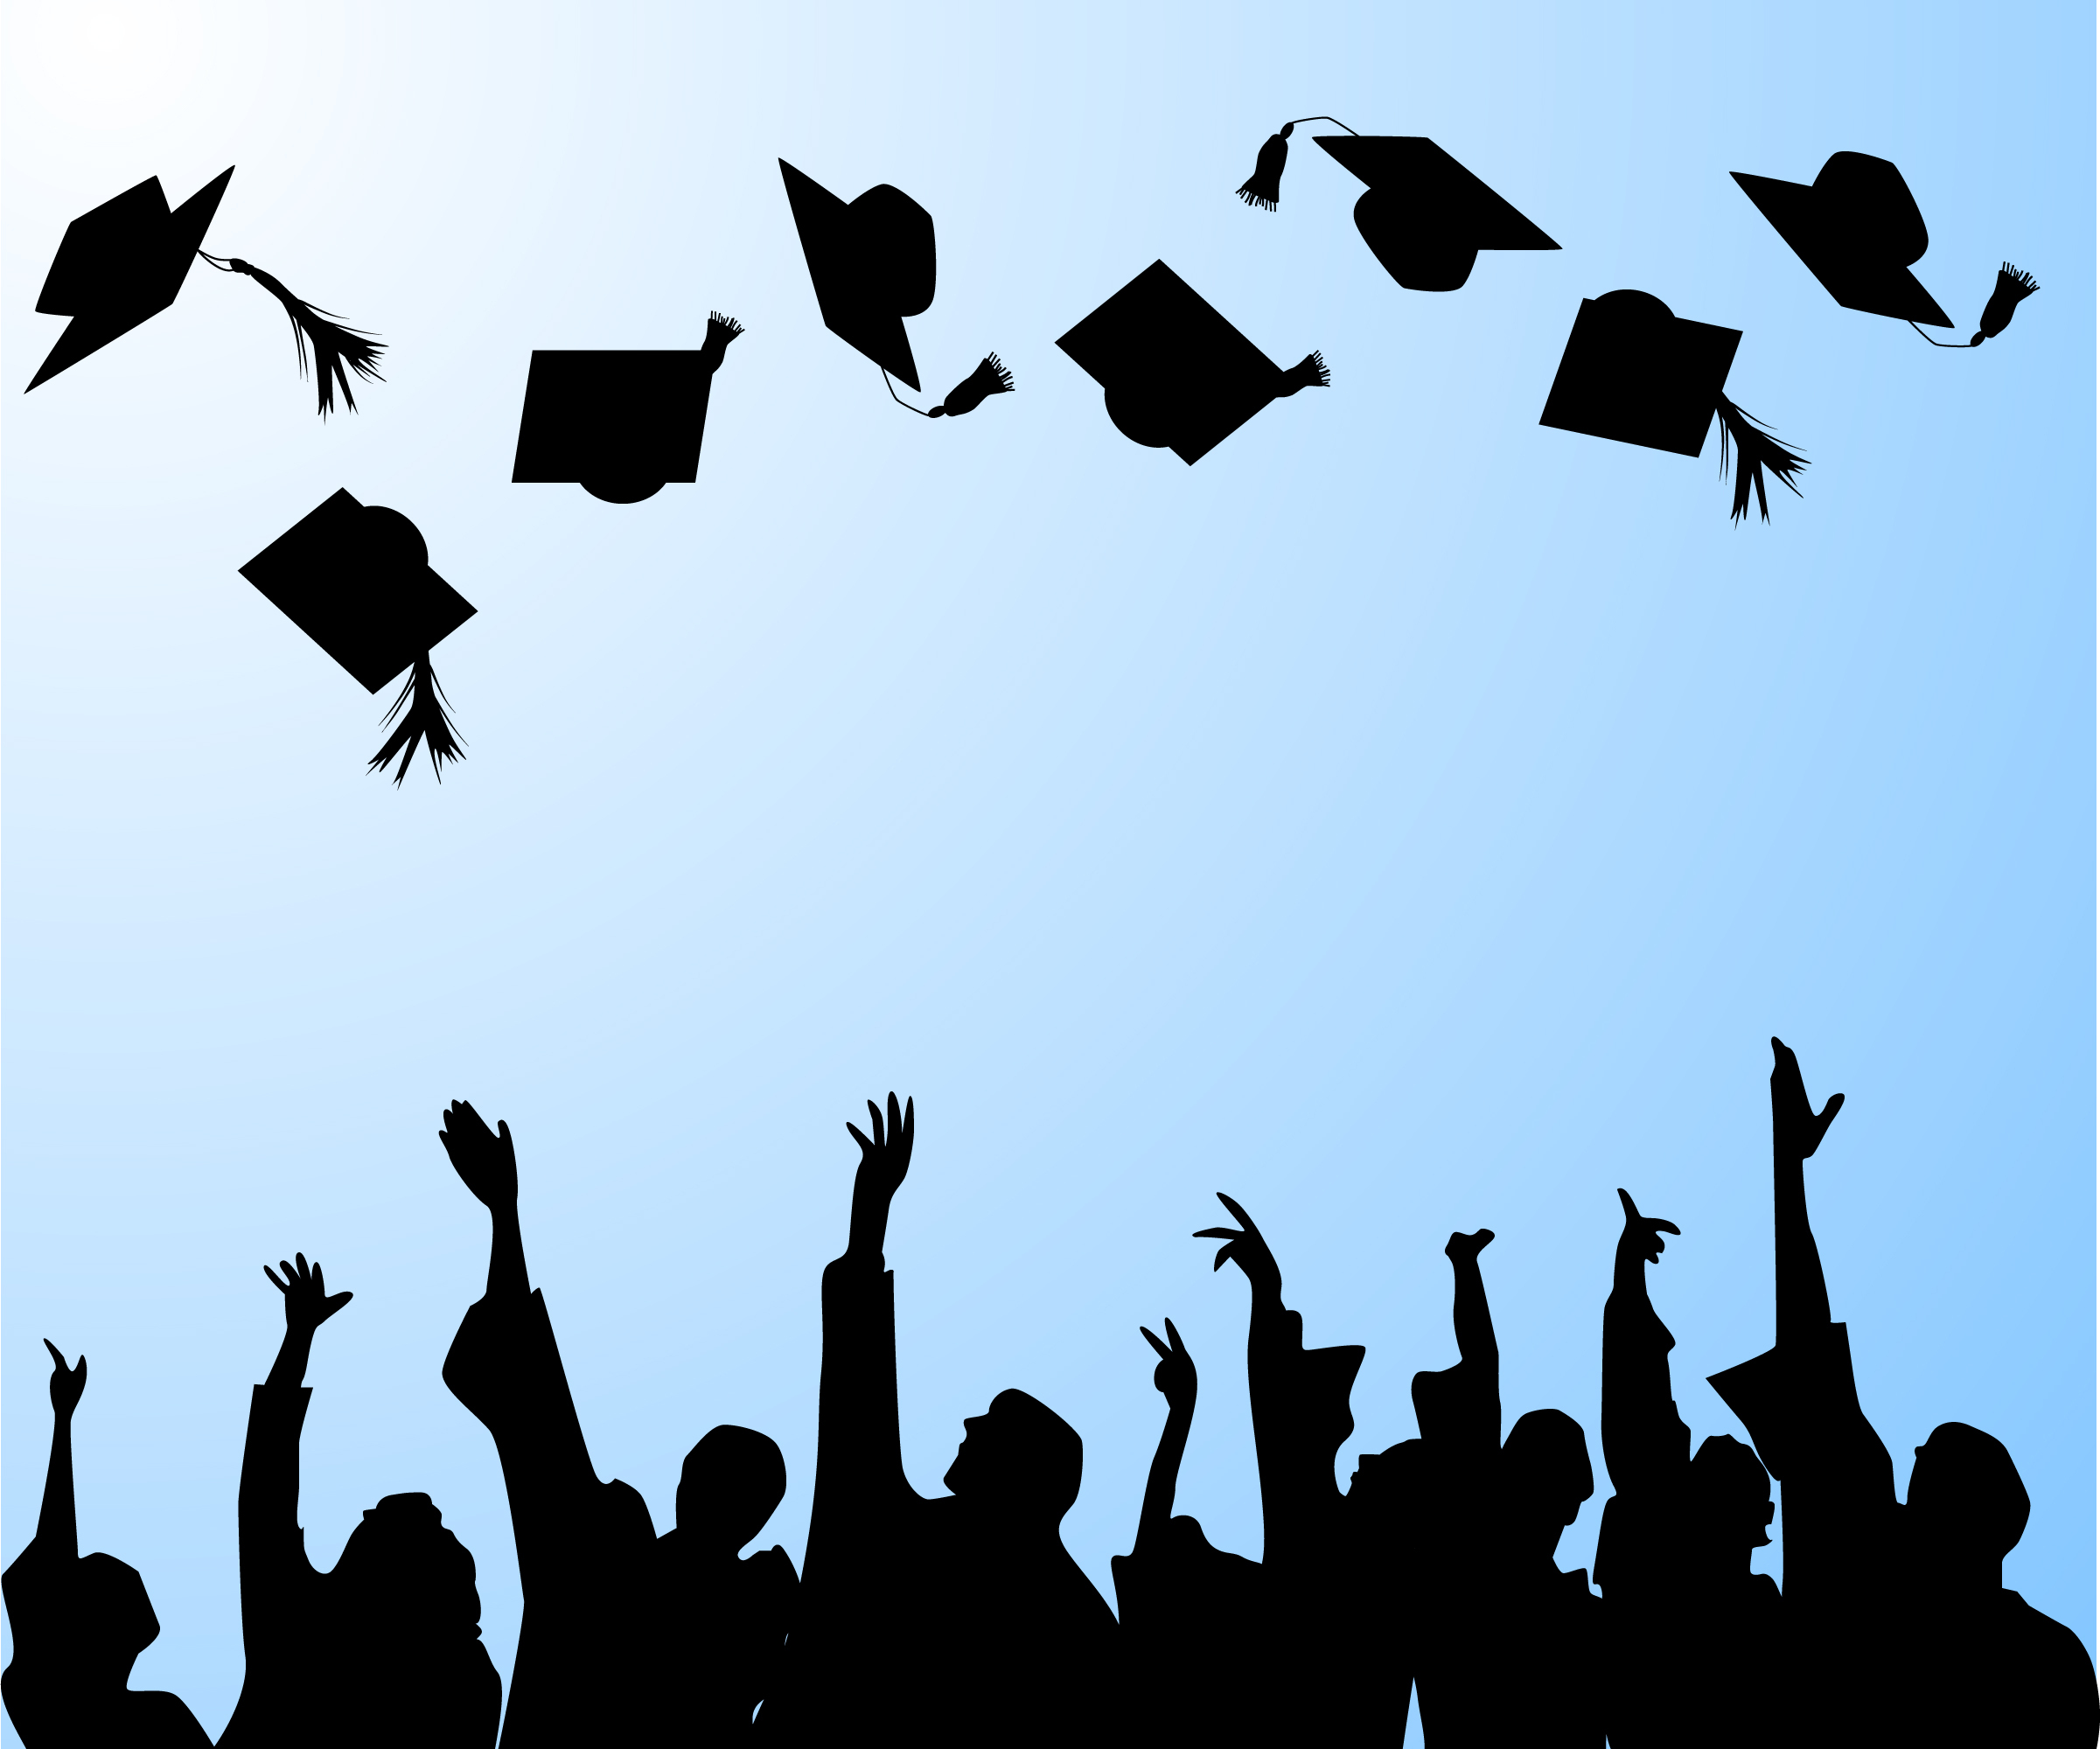 An animated image of college grads throwing their caps in the air.